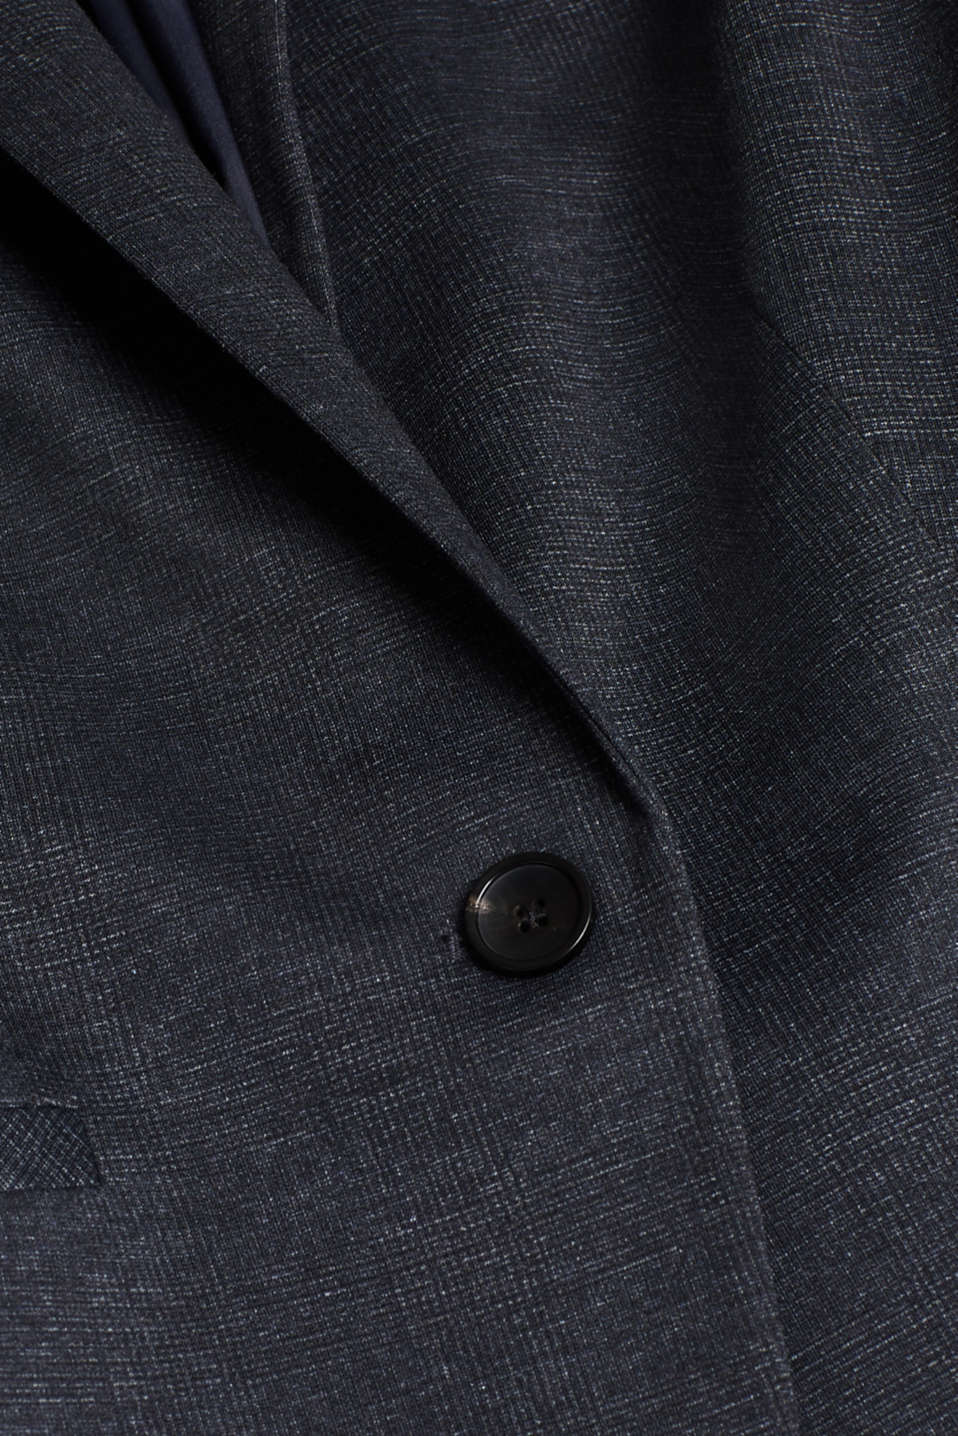 Stretch blazer in a business look, NAVY 5, detail image number 4